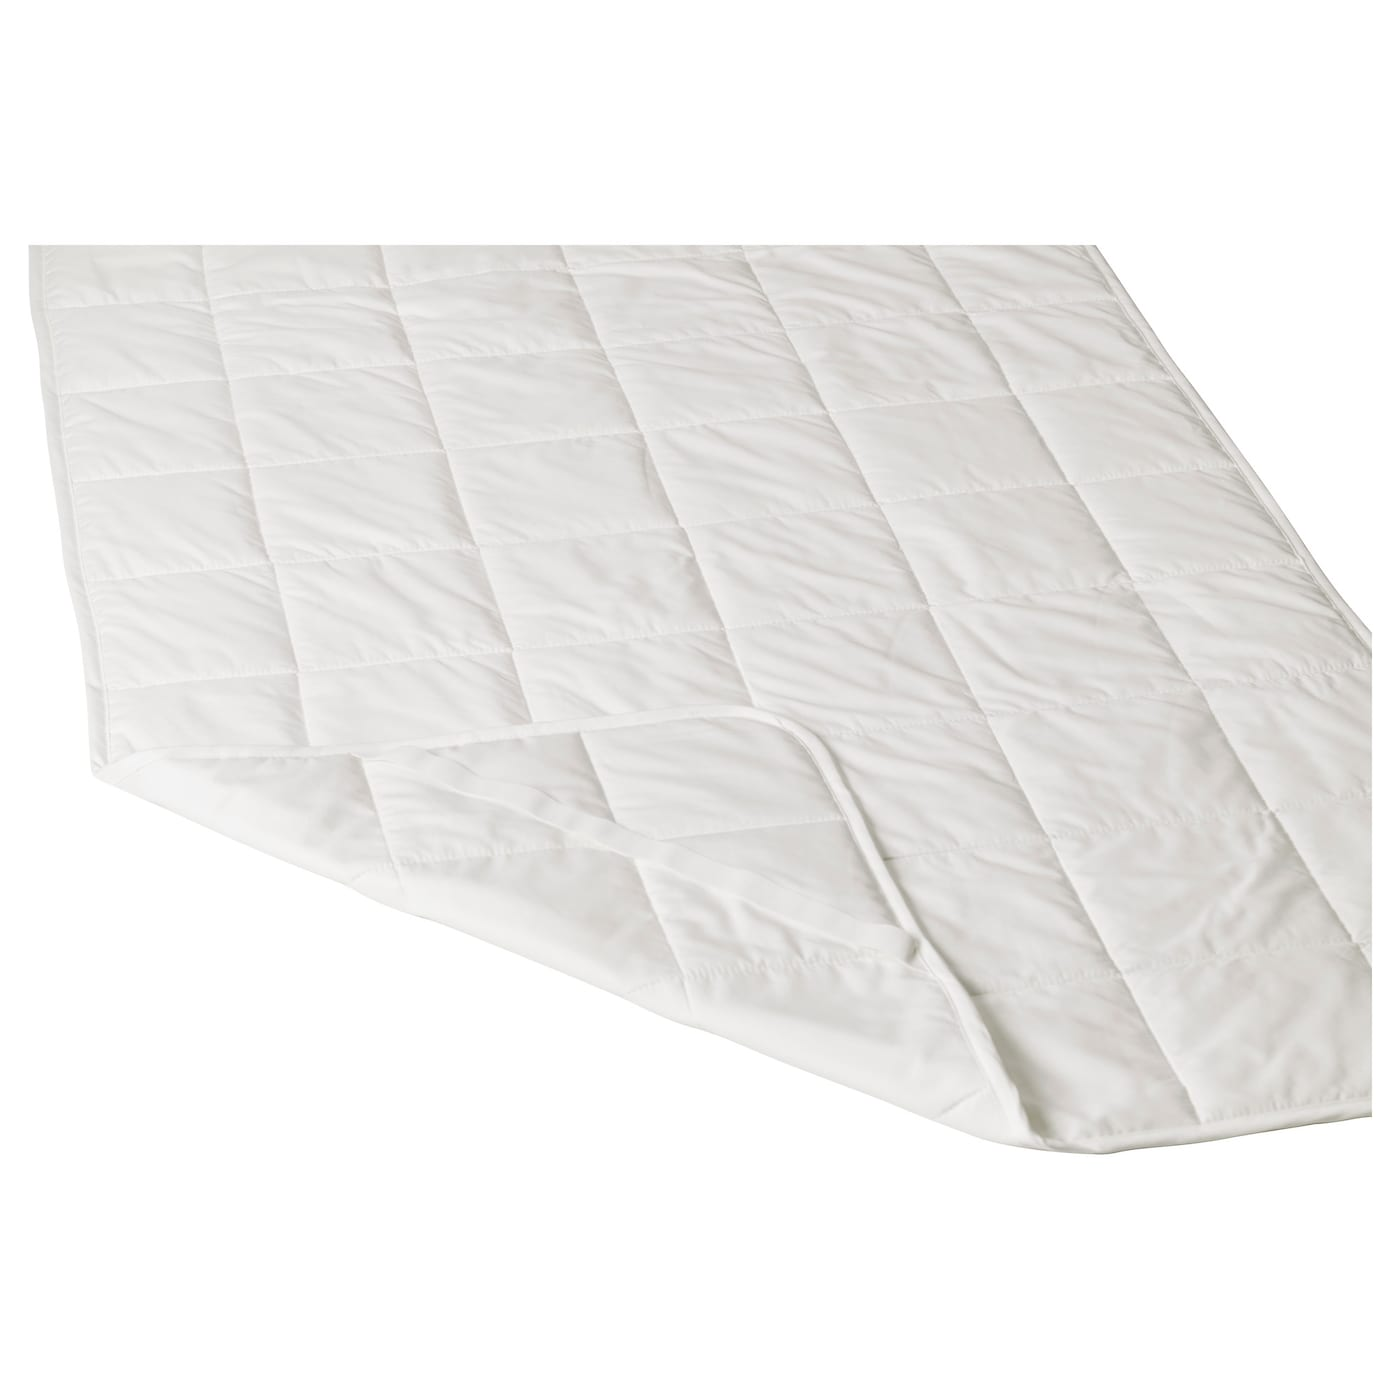 KUNGSMYNTA Mattress protector King IKEA